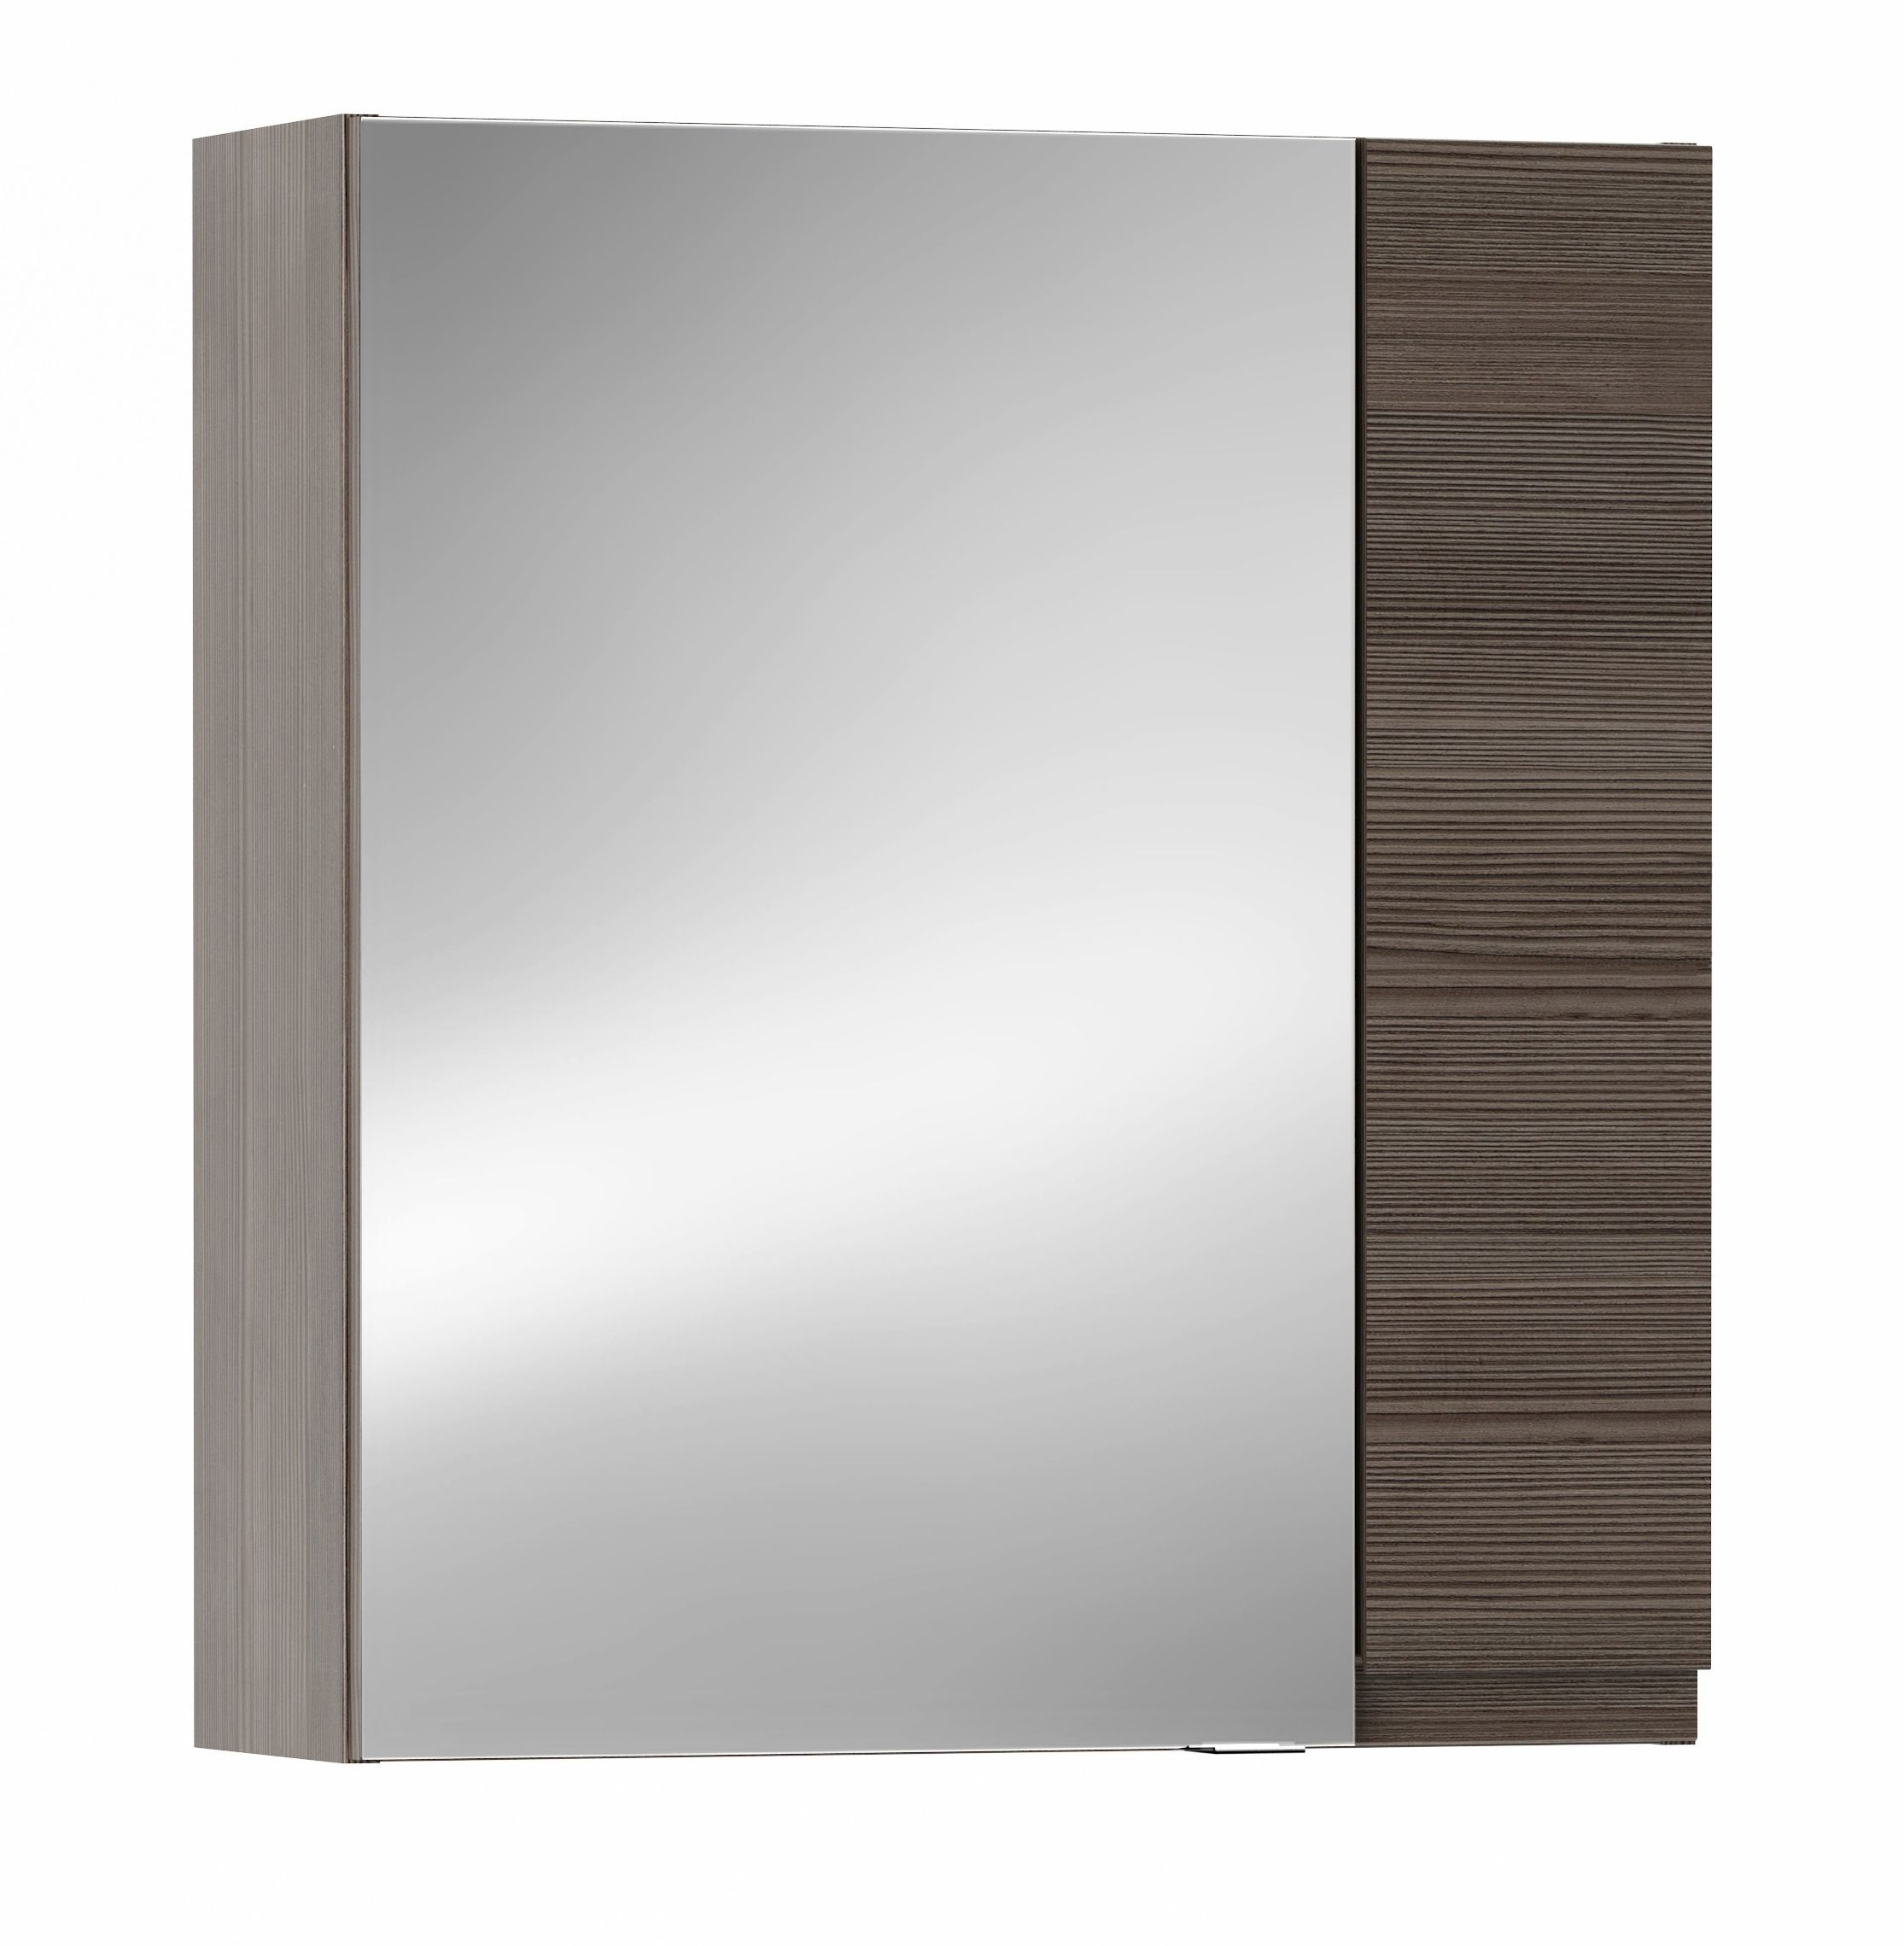 Cooke lewis paolo bodega grey mirror cabinet for B q bathroom cabinets